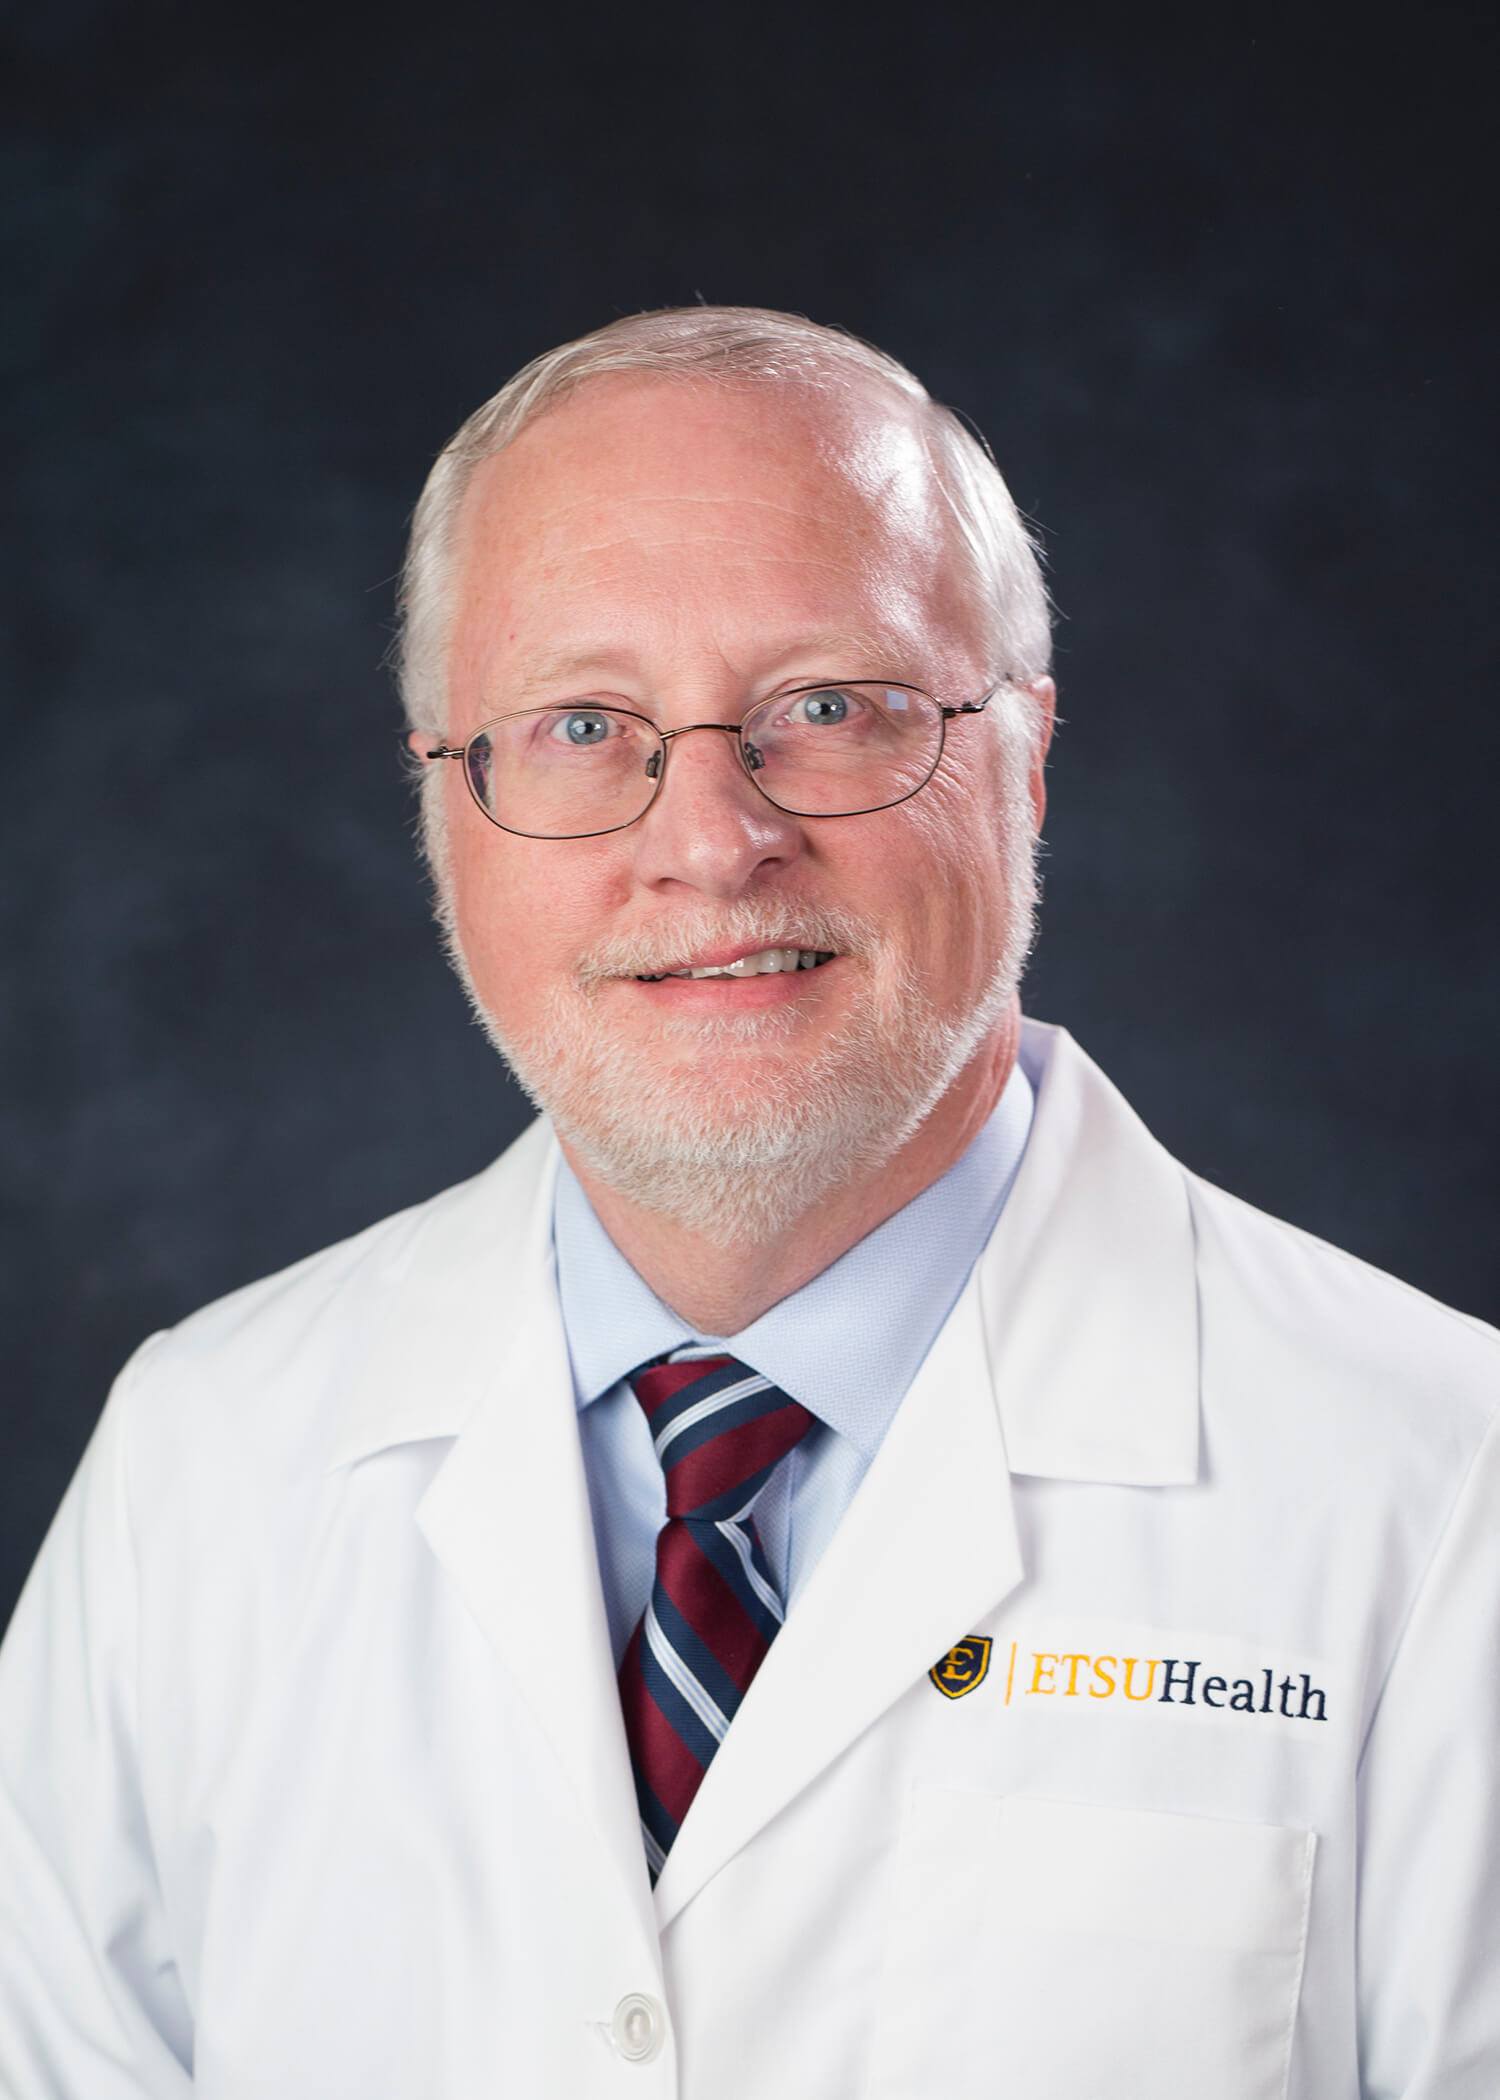 Photo of Kenneth Olive, M.D., F.A.C.P.